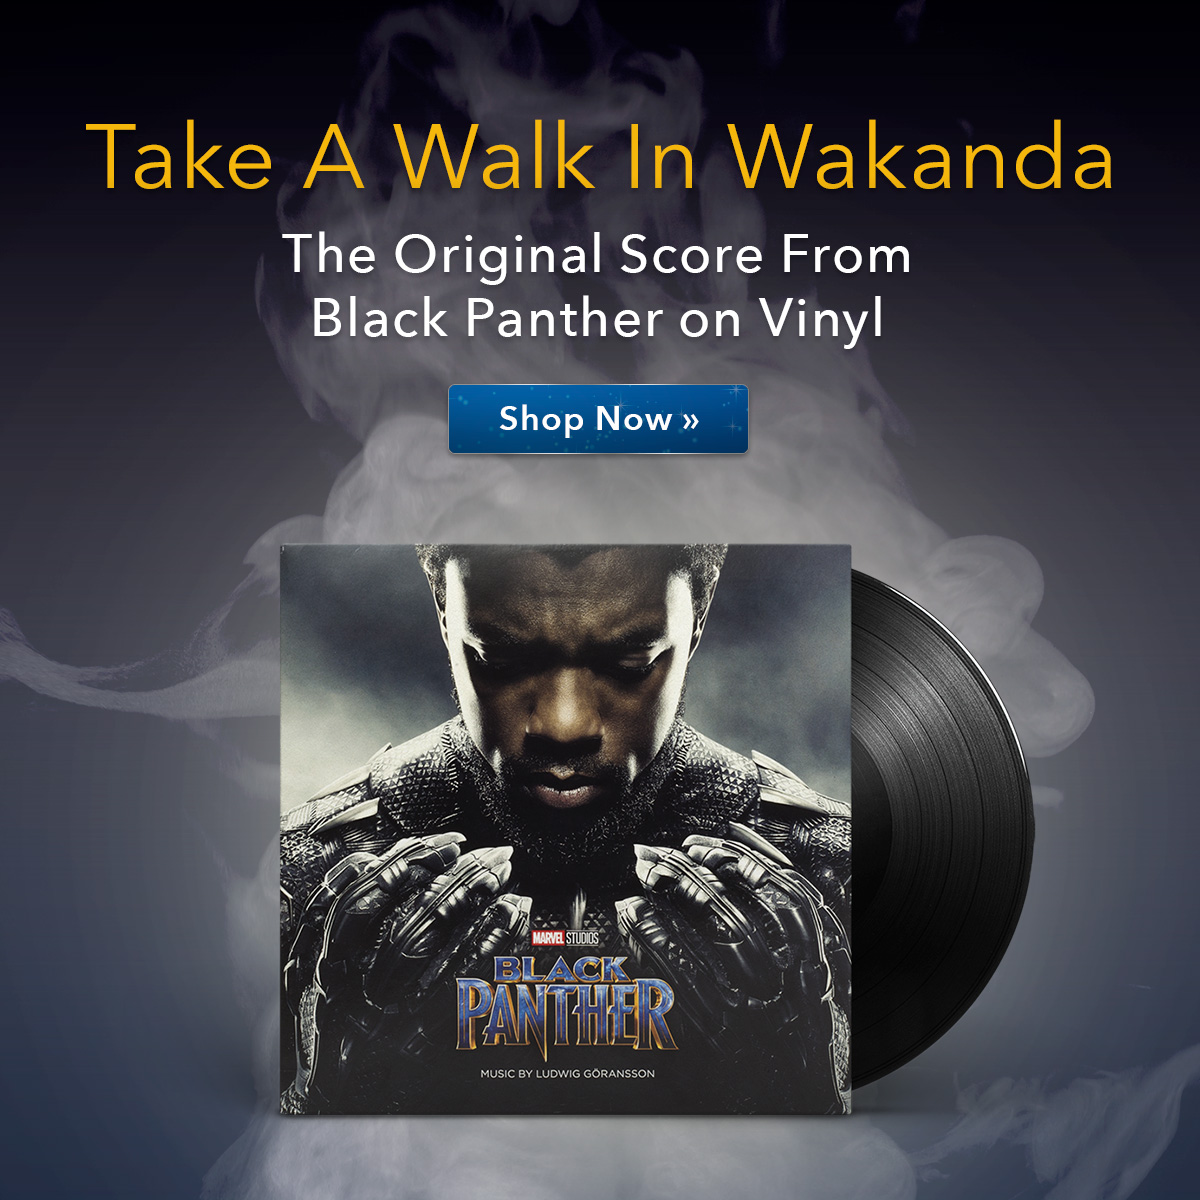 Black Panther on Vinyl